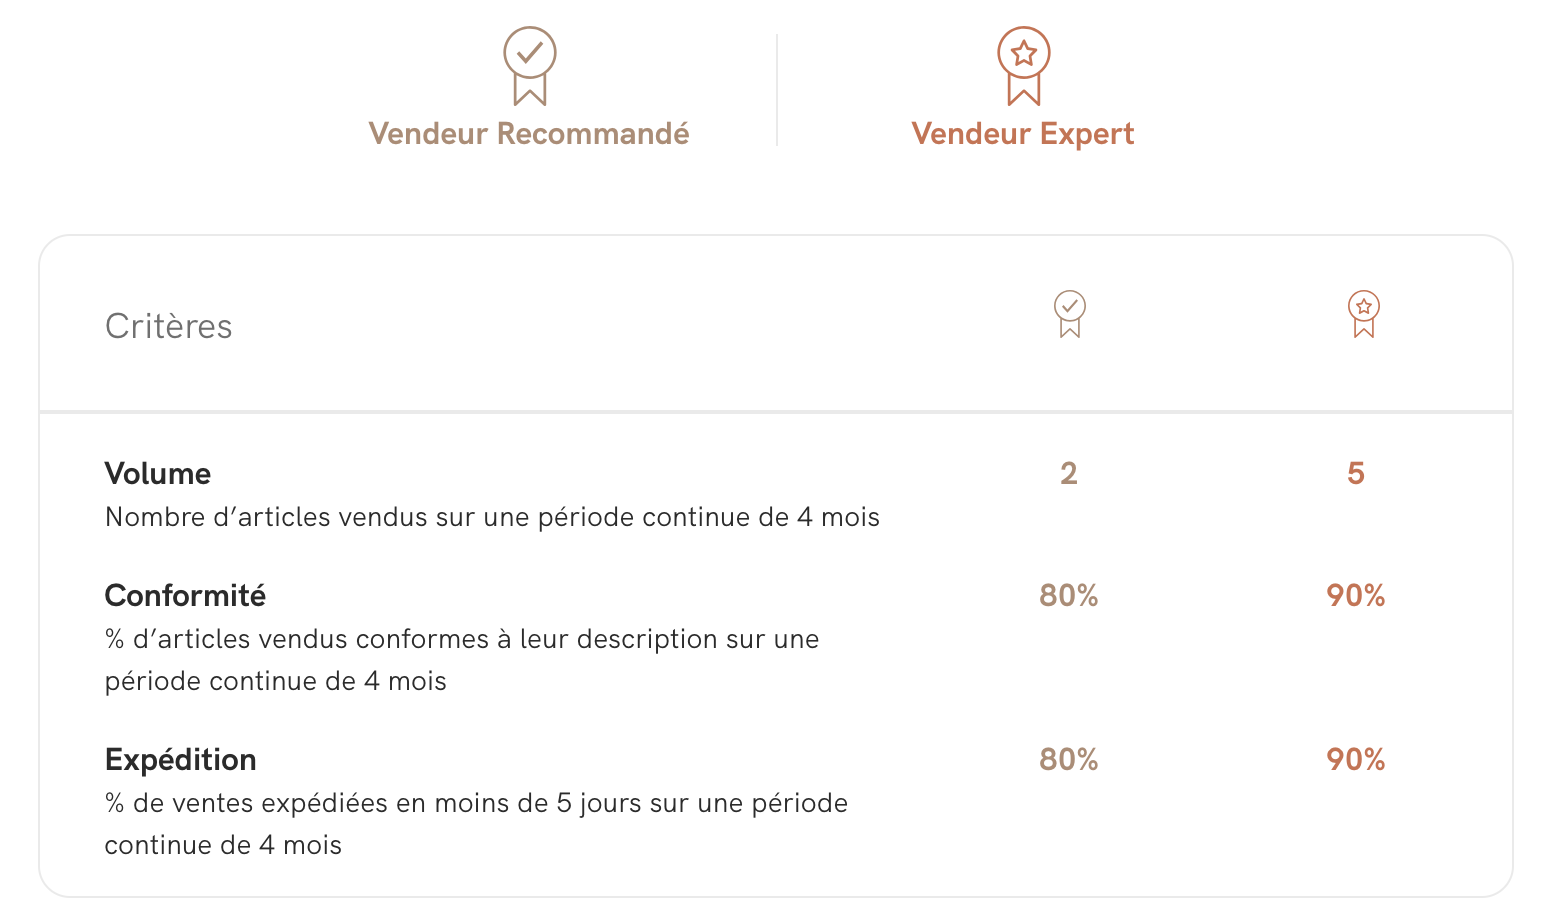 SellerRating_BadgesDetails_FR.png